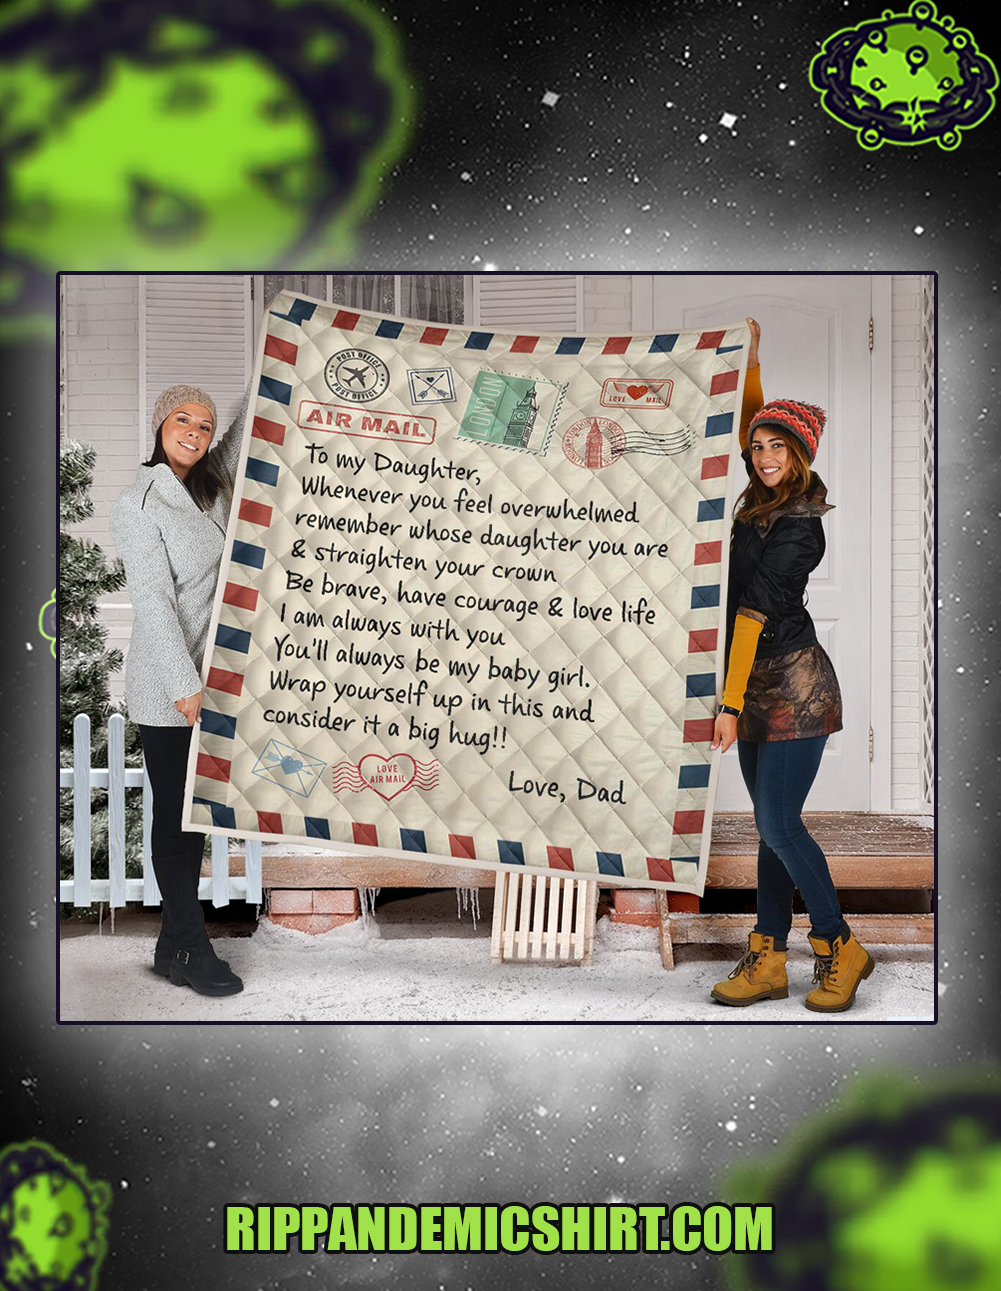 Letter air mail to my daughter love dad quilt queen